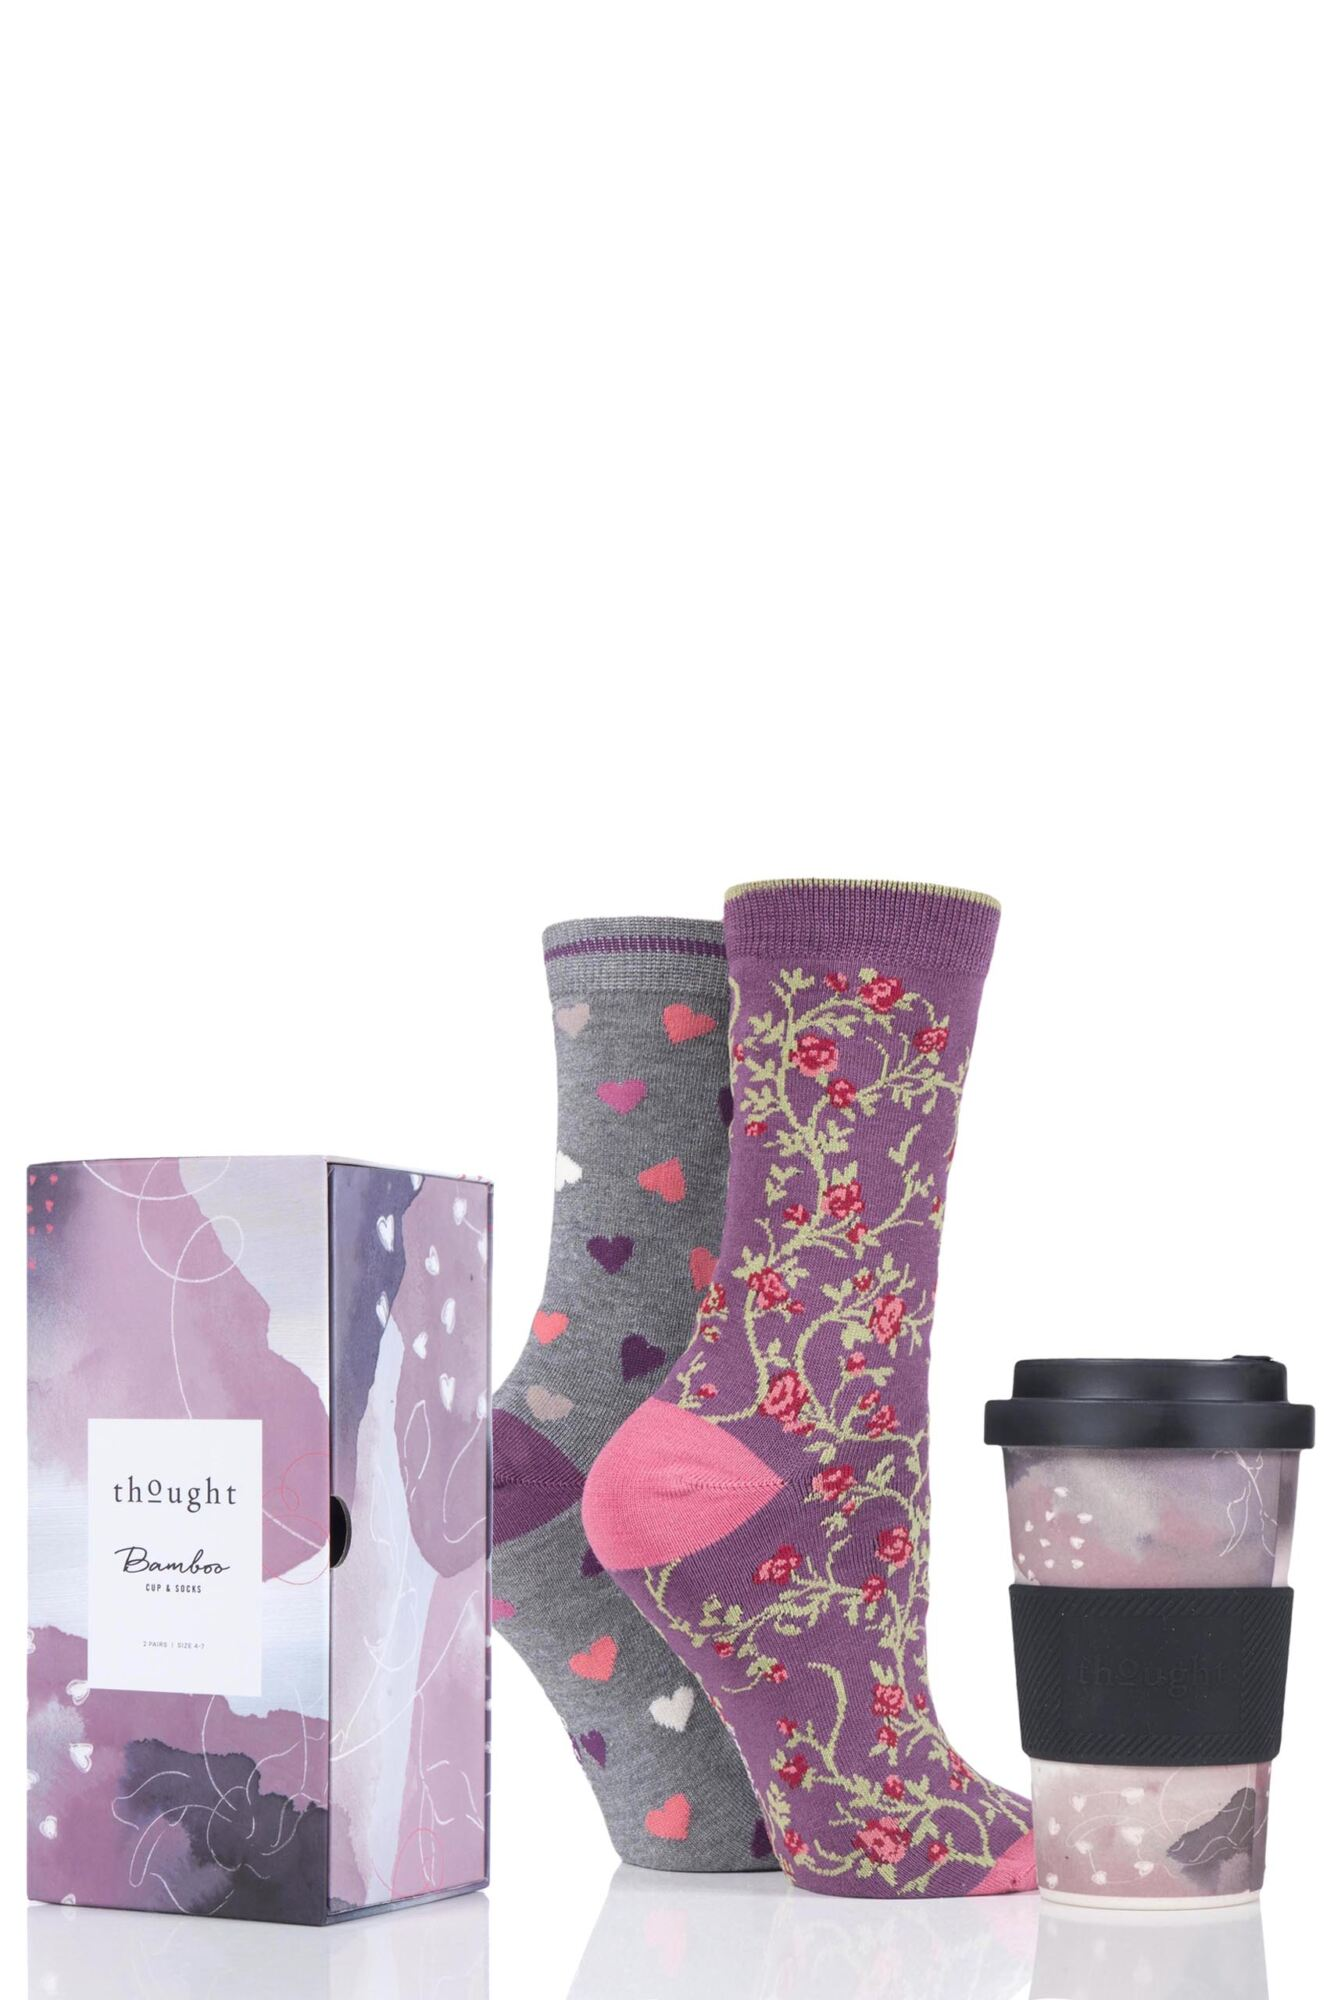 2 Pair Hearts Bamboo and Organic Cotton Socks with Bamboo Travel Cup Ladies - Thought